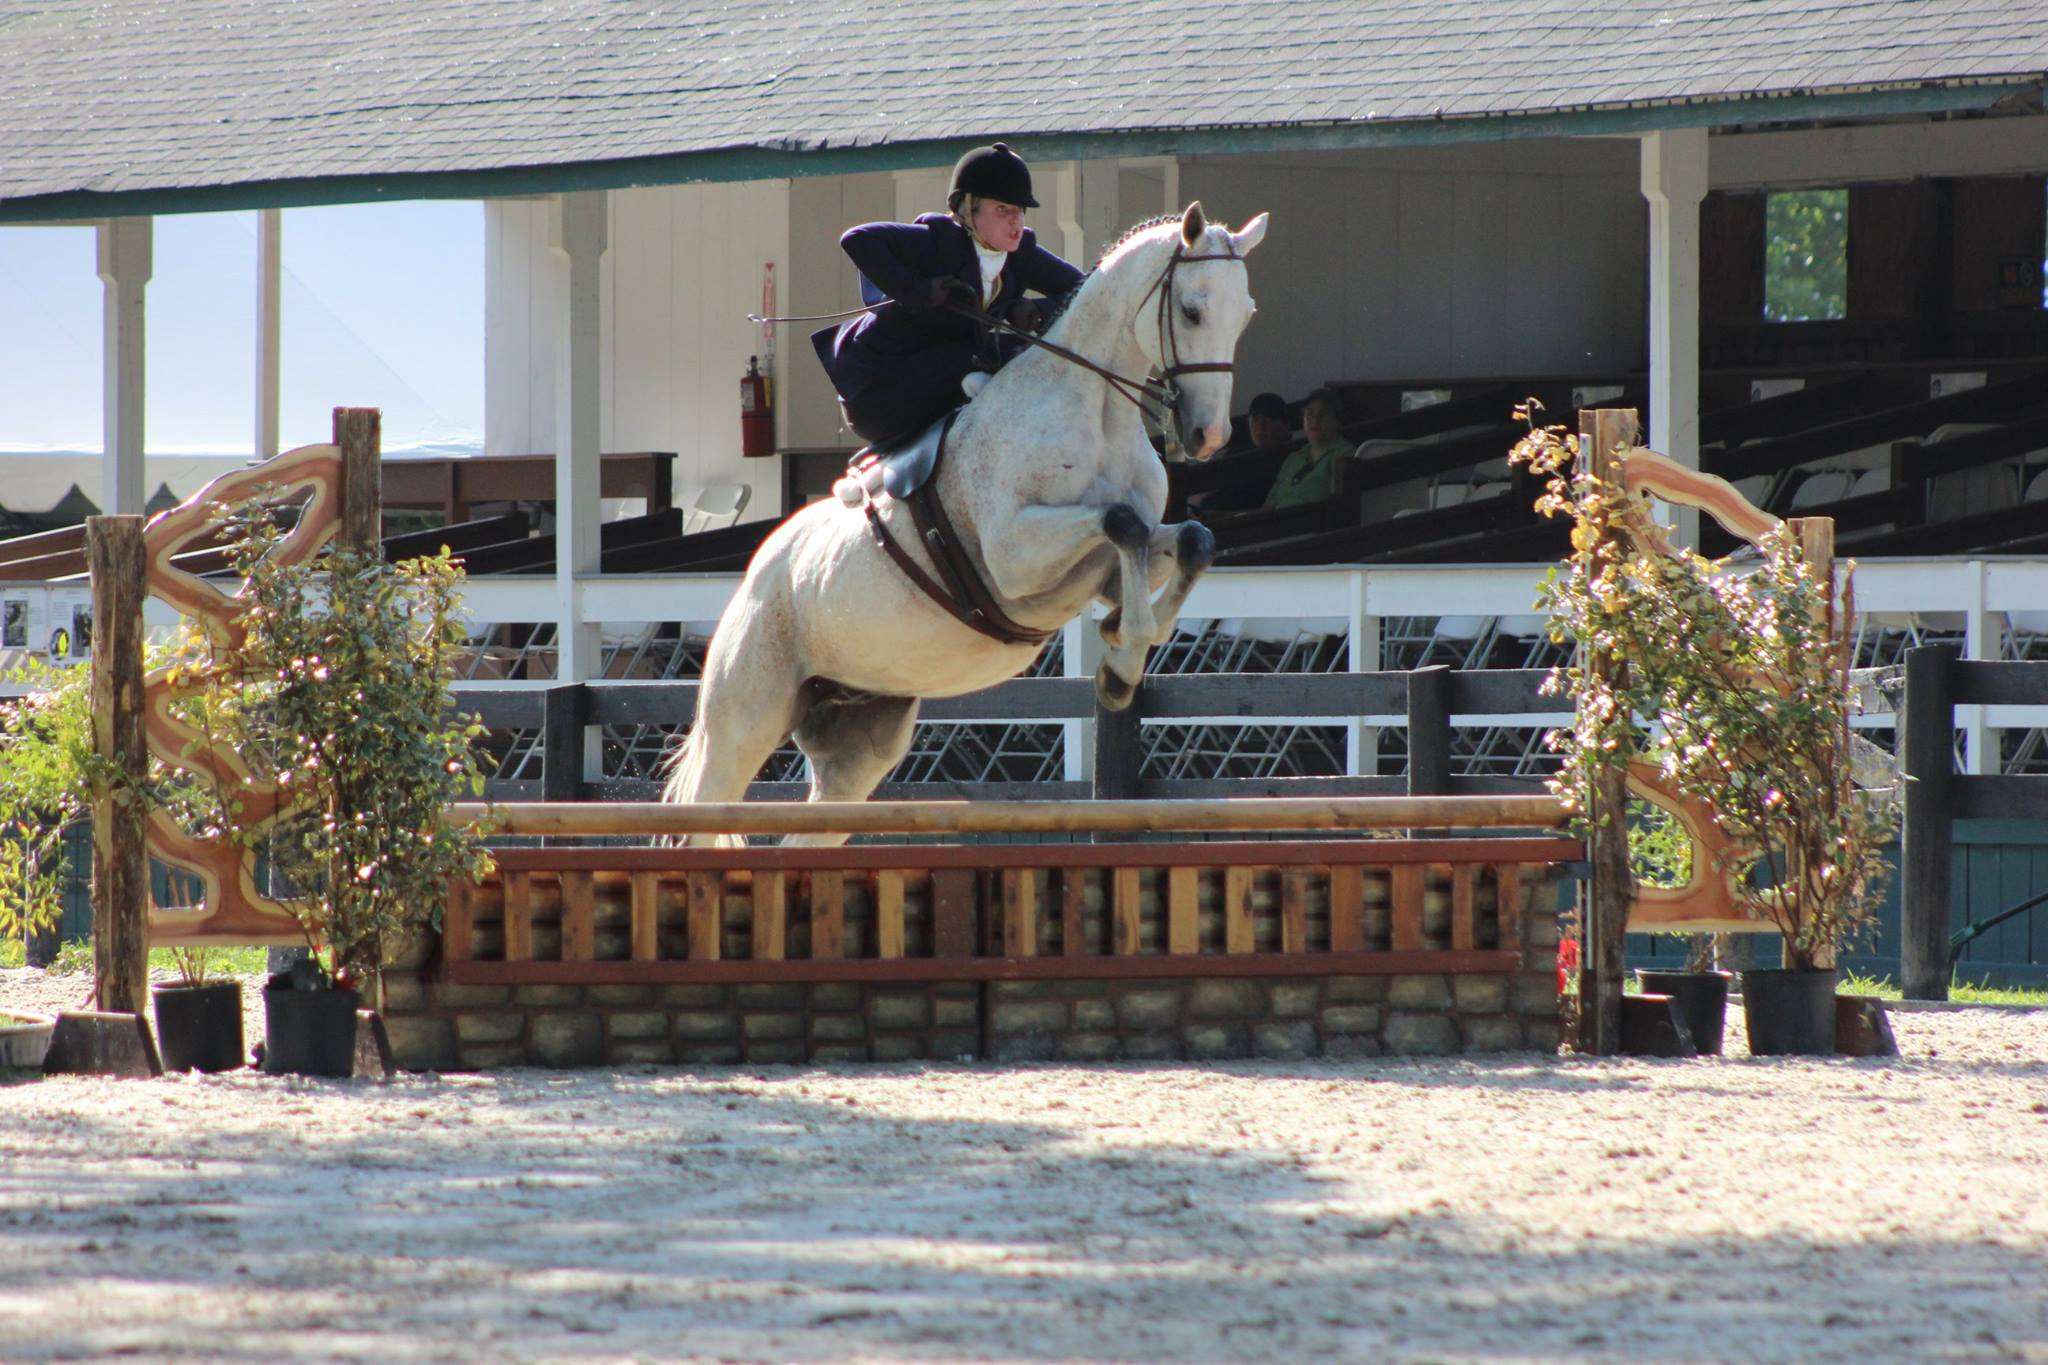 "Rider : Dillyn Ketterman-Millnick   Hometown : Purcellville, VA   Horse : ""Always As You Wish"" (Westley) – 11 yr old, off-track TB gelding, and ""Always Elegant"" (Rhett) – 12 yr old, unraced TB gelding. Both are owned by Ketterman's Jewelers   Dillyn's Background : I have been riding since before I could walk. My 5 sisters and I were very involved in the 4H horse program and grew up doing mostly local and 4H level showing. When I was 15 we needed a demonstration for the county fair and a friend of ours taught me side saddle for the demo and I was in love. My parents bought me the saddle, and I taught myself mostly, but Carol did help me with the occasional lesson and tune ups. I set goals to ride at Upperville and hunt and show in regular hunter shows Side saddle. I was the first and only rider to show side saddle in regular hunter classes at the Virginia 4-H state horse show, showing in Hunter over fences sat 2'6"". They have since made a rule against it because people thought it was unfair somehow. I am currently the Pastry Chef at Clyde's Willow Creek Farm in Ashburn, VA, I went to Culinary School at the Art Institute of Washington and also have an associated degree in Deaf Studies, American Sign Language, from Northern Virginia Community College. I have been riding side saddle for 12 years.   What is your racing experience, side saddle or otherwise? : I began racing aside in 2016. I had no previous experience racing.   Do you fox hunt? Do you hunt aside ?: I fox hunt side saddle and don't like to go astride anymore. I am a thousand times more confident side saddle than I am riding ""normally.""   What got you interested in racing aside? : My horse Rhett does not like the show ring, he is a completely different horse inside the ring from who he is out hunting. He loves to be in open fields but I still want to compete a little bit. So we started racing, back when the races were first getting started. He had no idea what was happening and came in at the very end. Now that we have been doing this for a few years he is finally starting to get a little competitive.   What are your side saddle goals for 2018? : I have gotten a second horse, Westley and I am really excited for him! He has a fantastic personality and is so sweet and does not mind the show ring. I am hoping to have some fun showing and racing him this year while my friend Hannah helps me out by showing and racing Rhett a little bit for me."